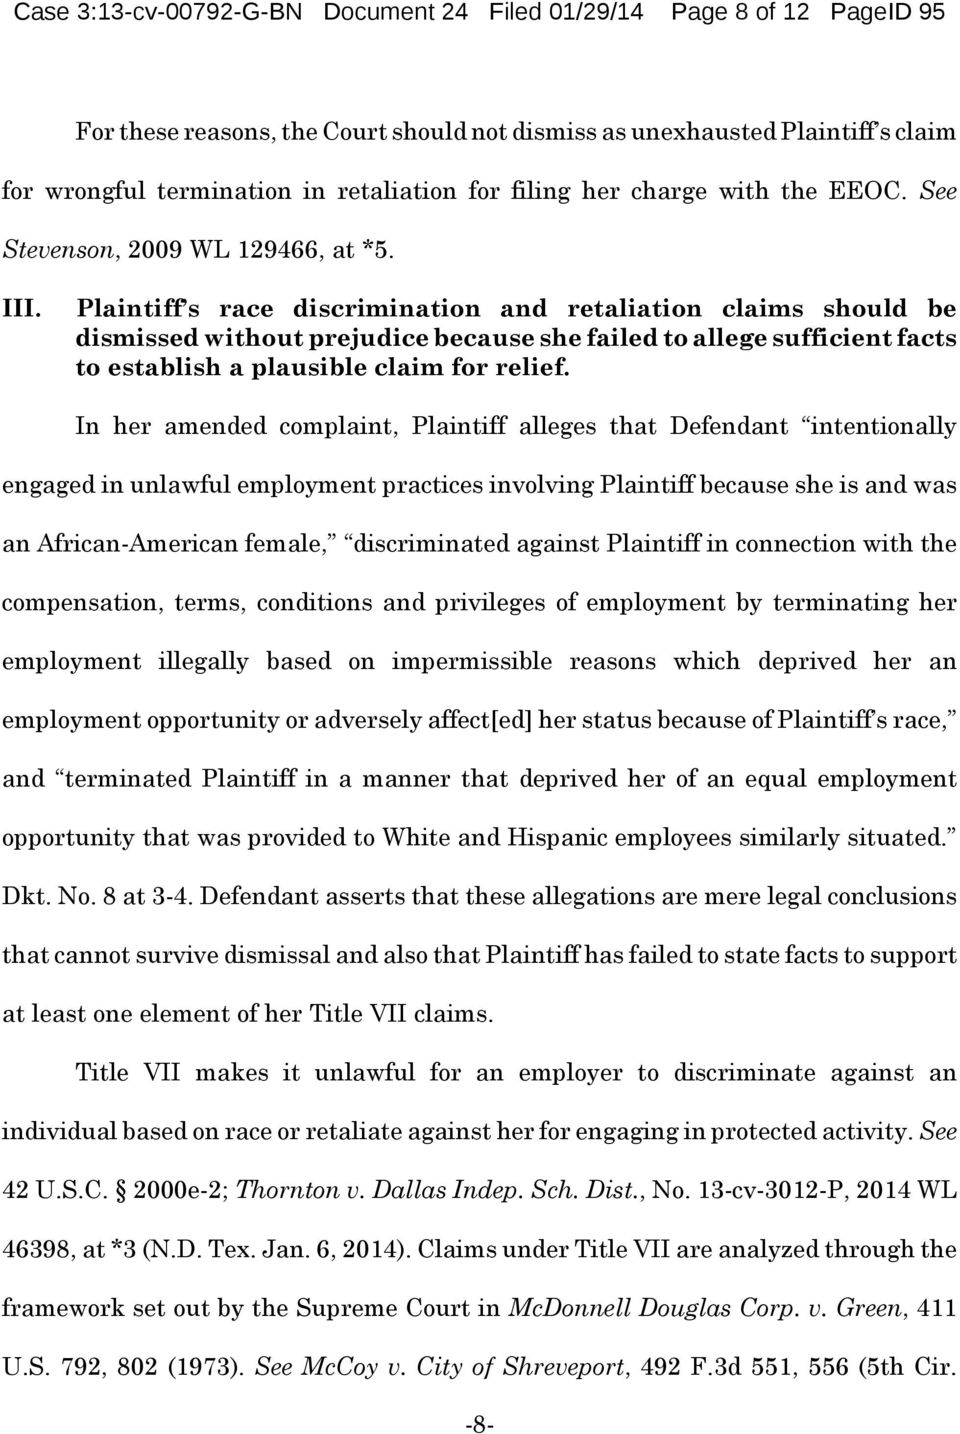 Plaintiff s race discrimination and retaliation claims should be dismissed without prejudice because she failed to allege sufficient facts to establish a plausible claim for relief.